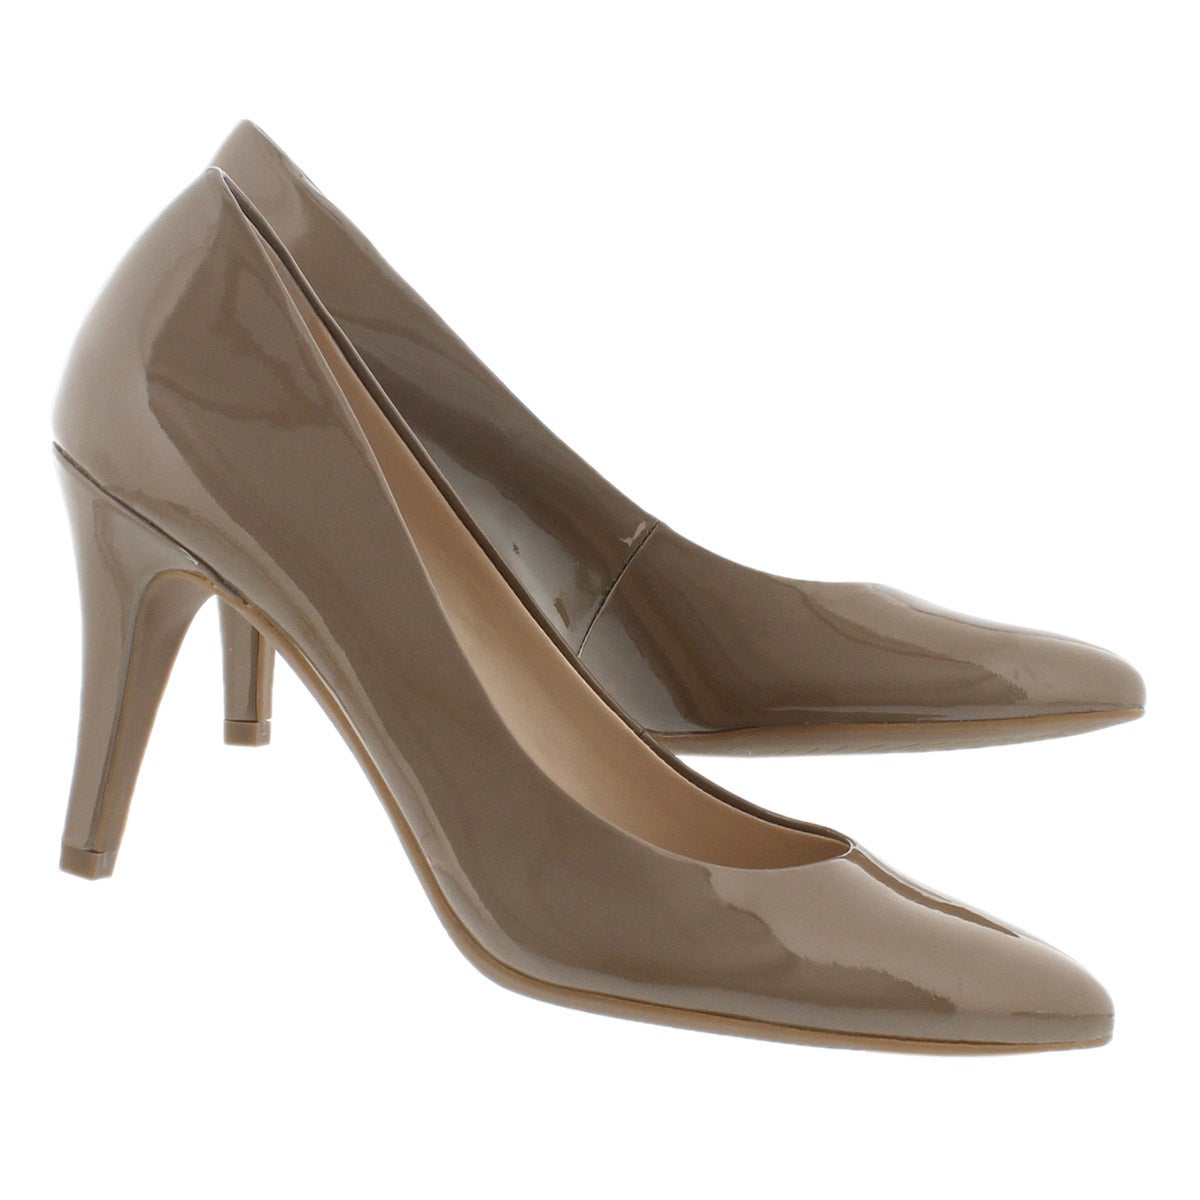 Lds Howie taupe patent dress pump